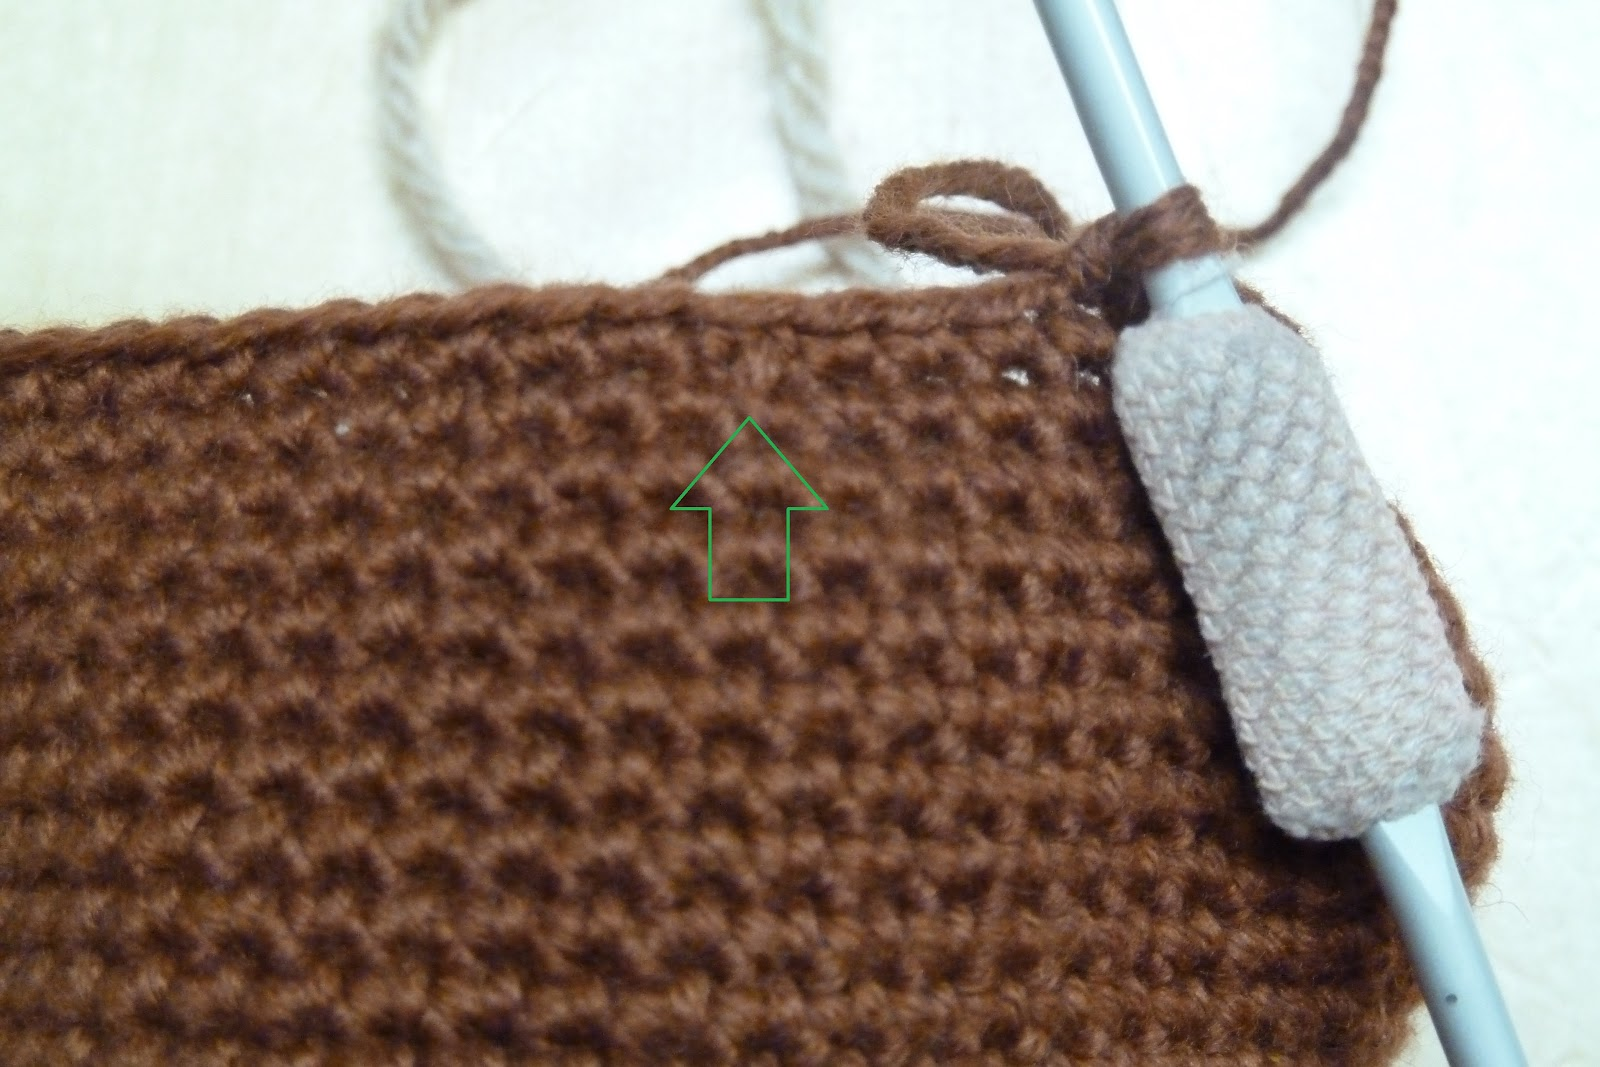 Crochet Stitches Dc2tog : Keeping Mama Sanchez busy...: Crochet - working doubles in continuous ...